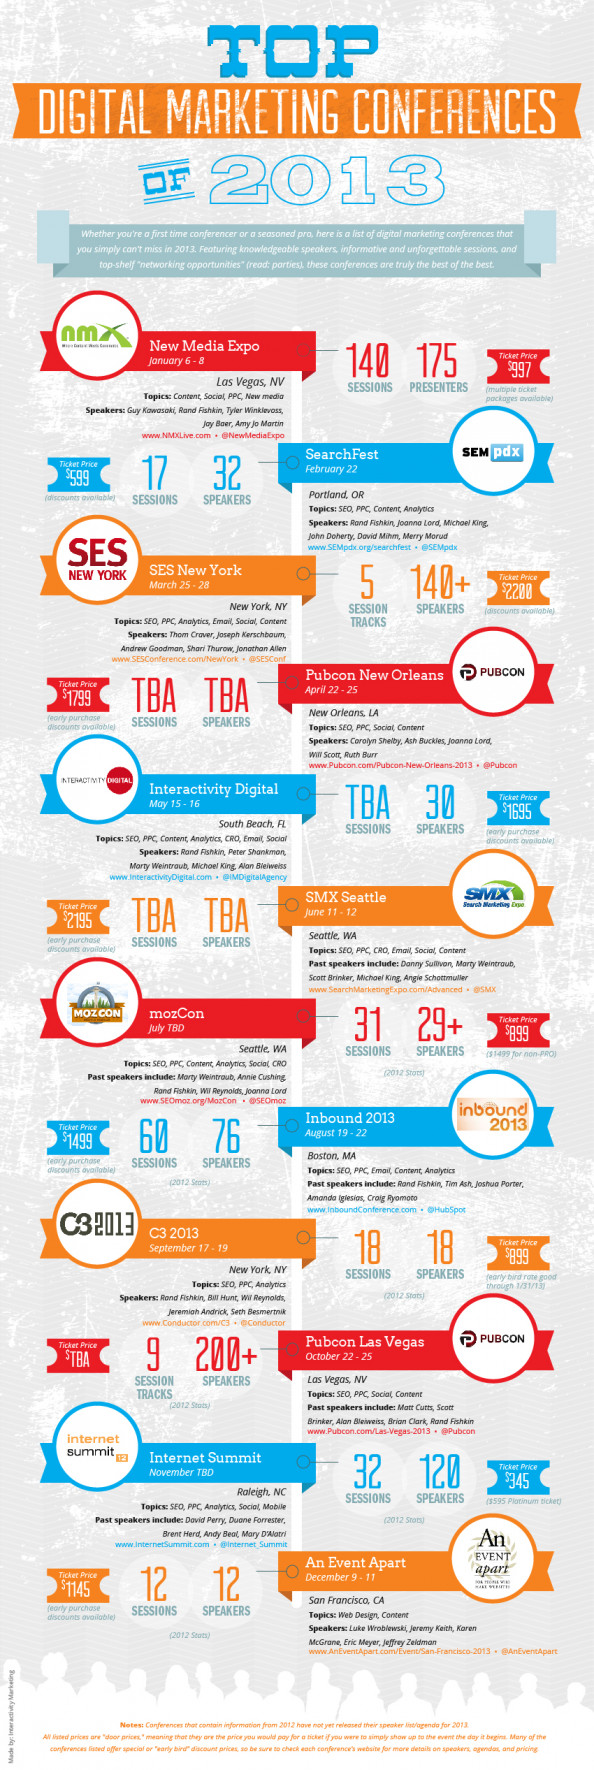 Top Digital Marketing Conferences of 2013 Infographic